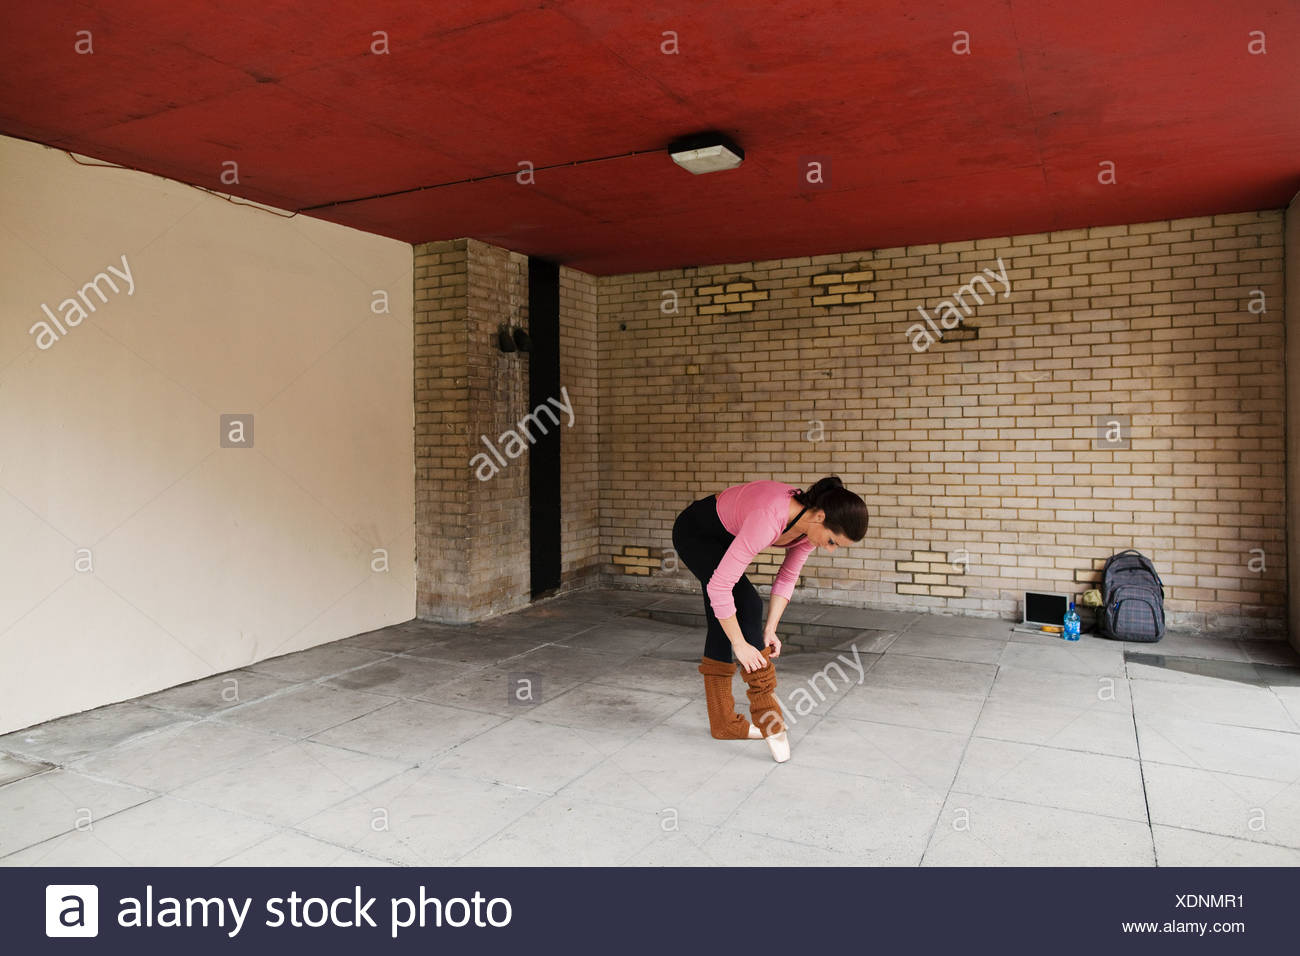 Woman adjusting leg warmers before work out - Stock Image